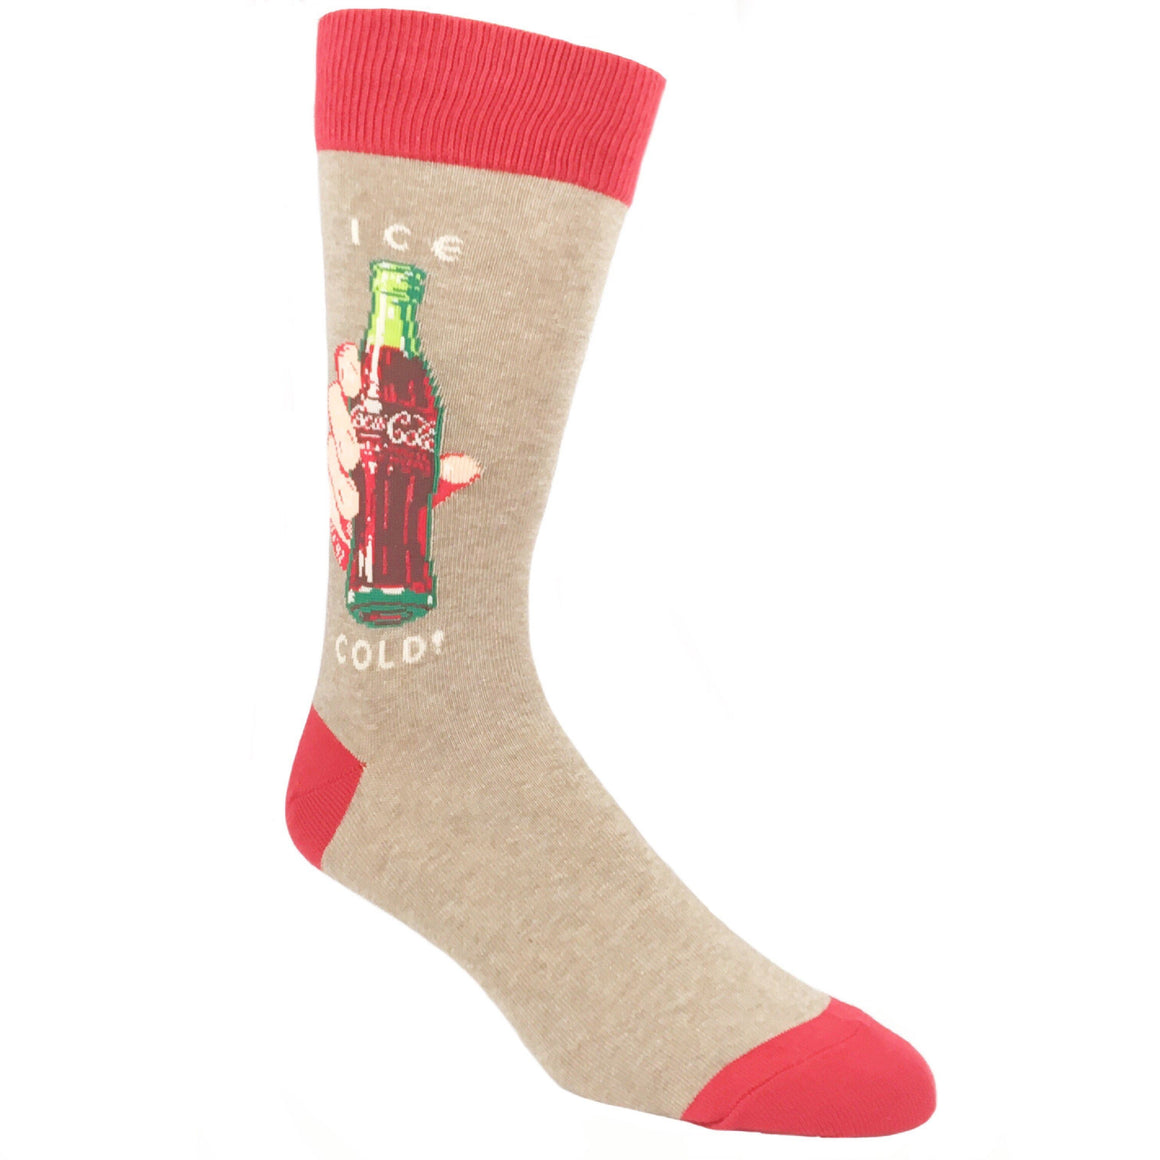 Ice Cold Coca-Cola Socks in Tan by SockSmith - The Sock Spot